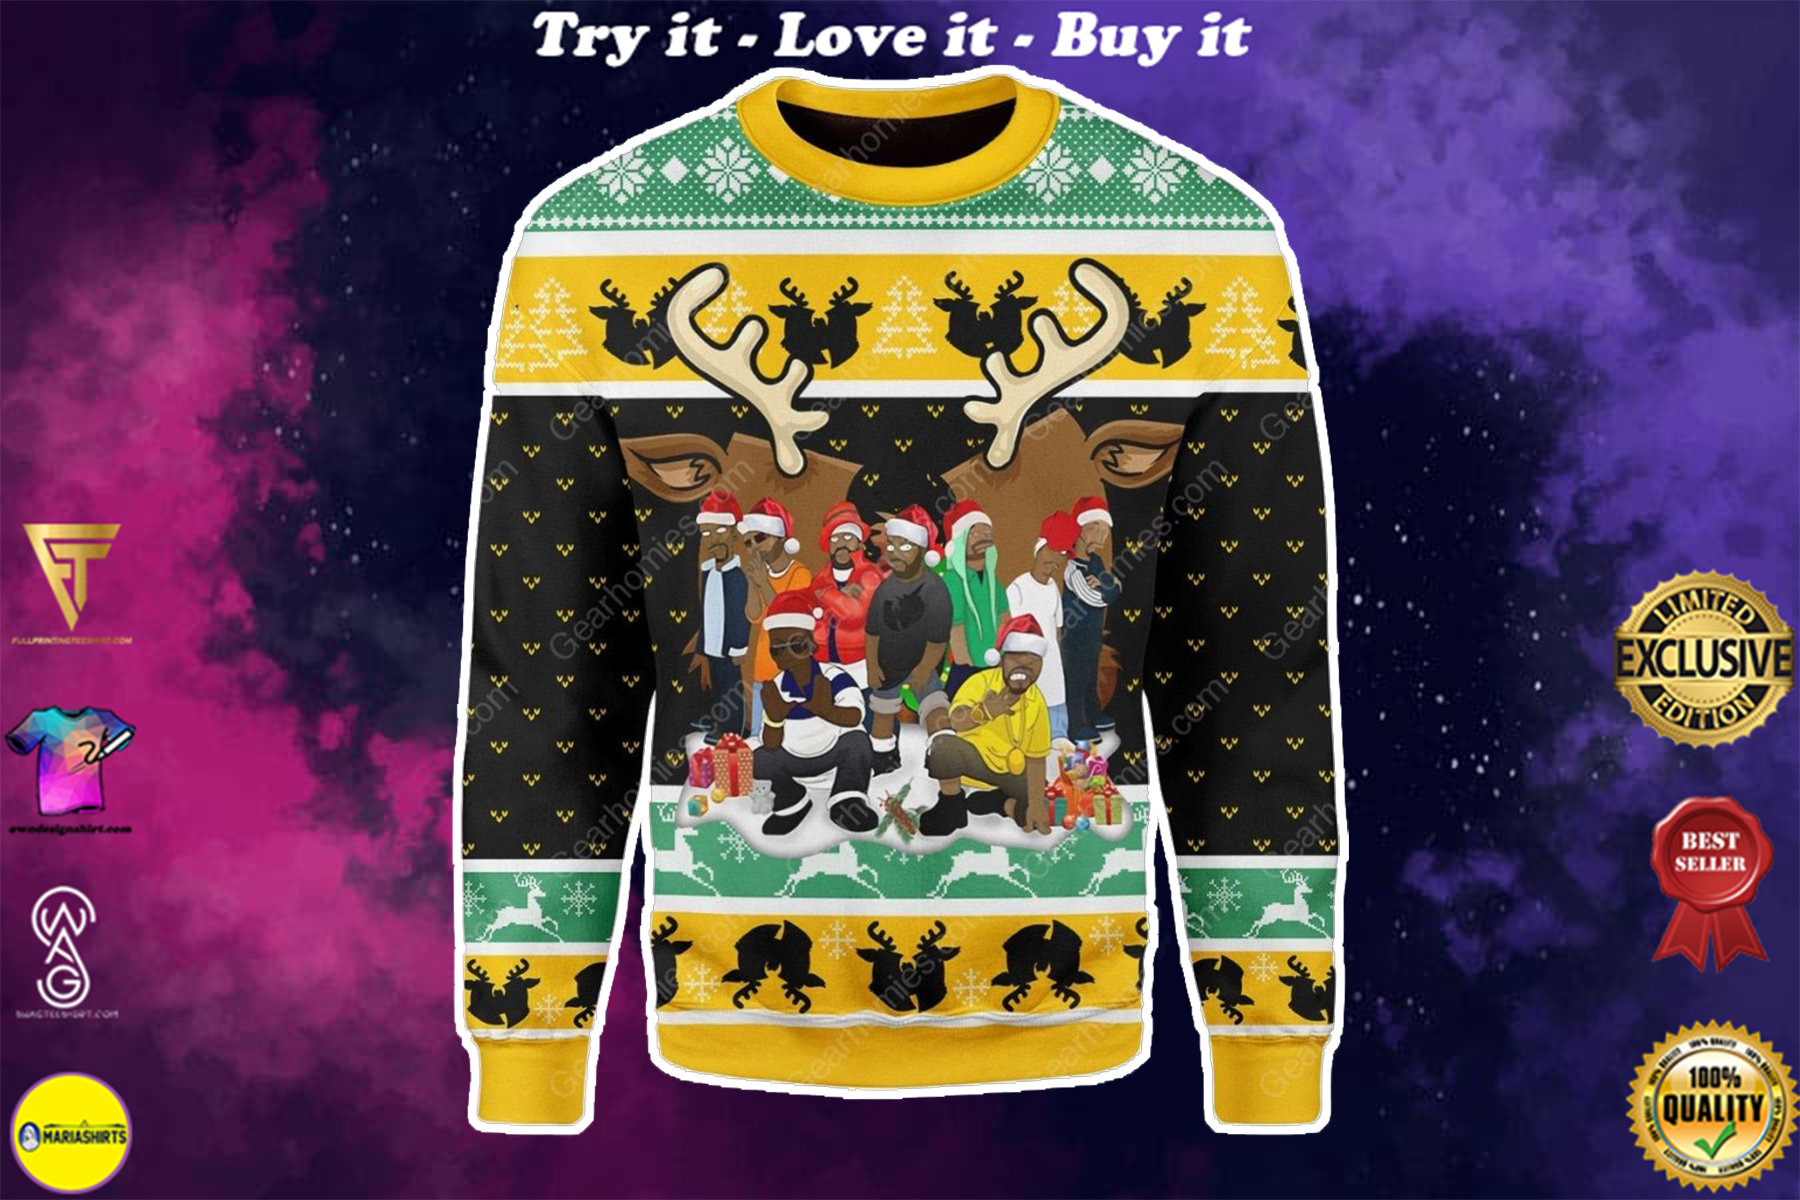 [special edition] wu-tang clan all over printed ugly christmas sweater - maria